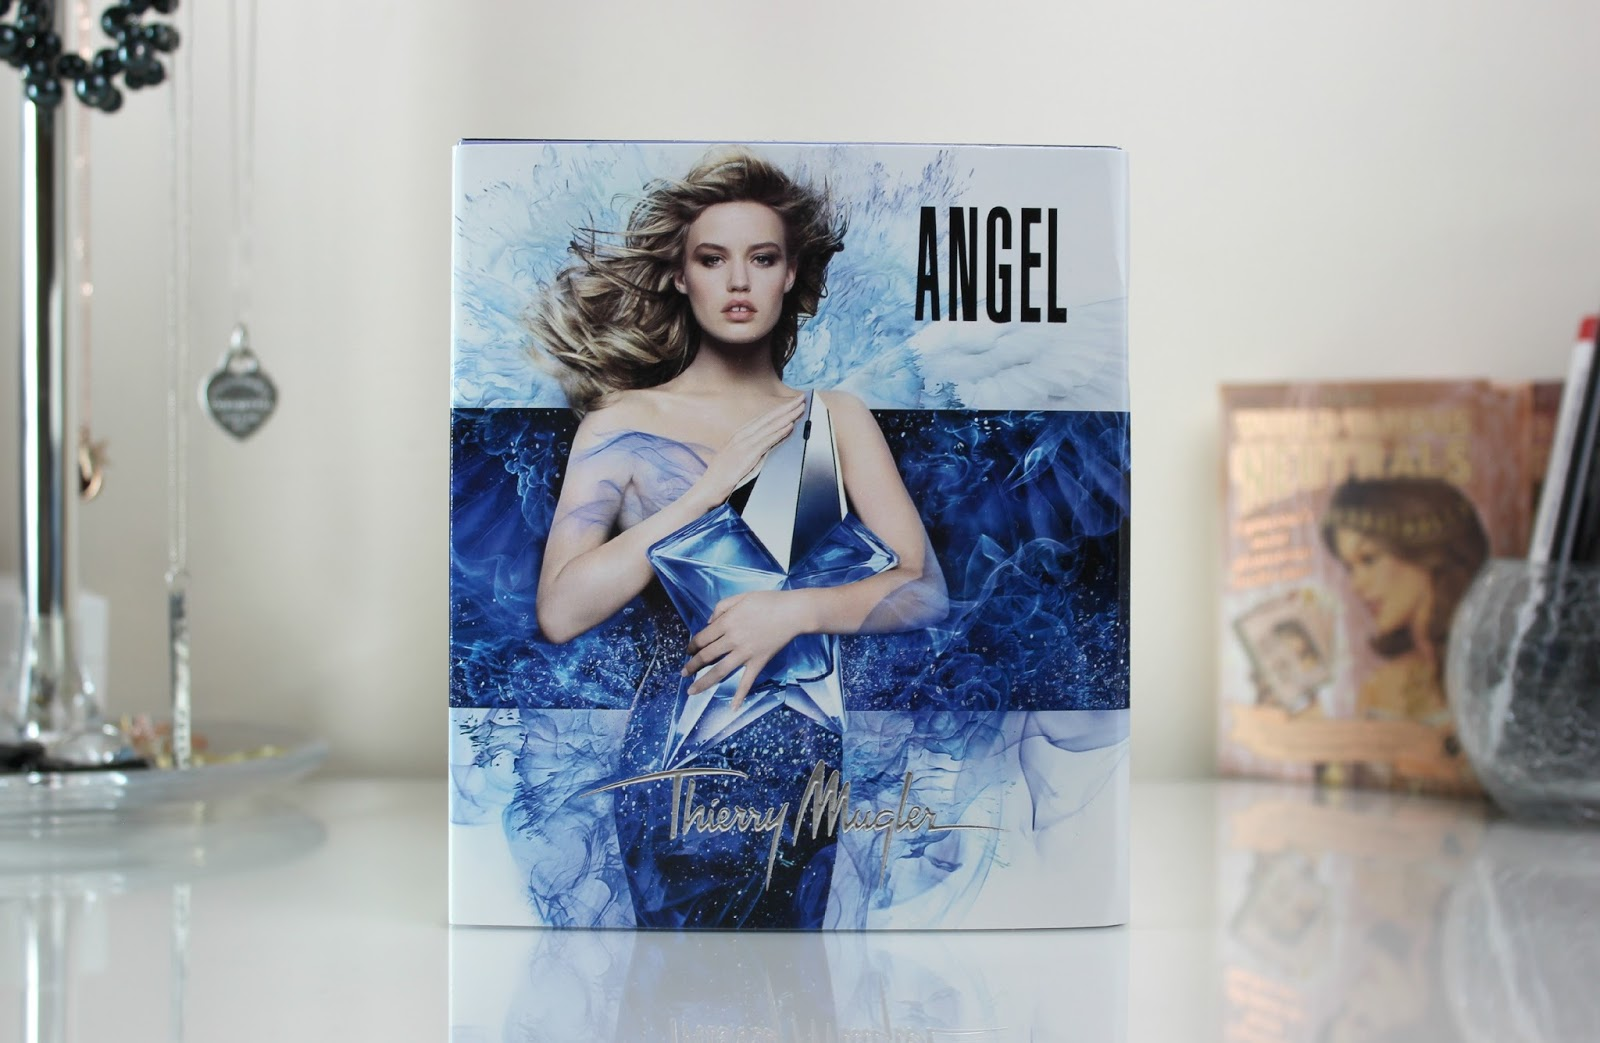 A picture of Thierry Mugler Angel New Star Eau de Parfum